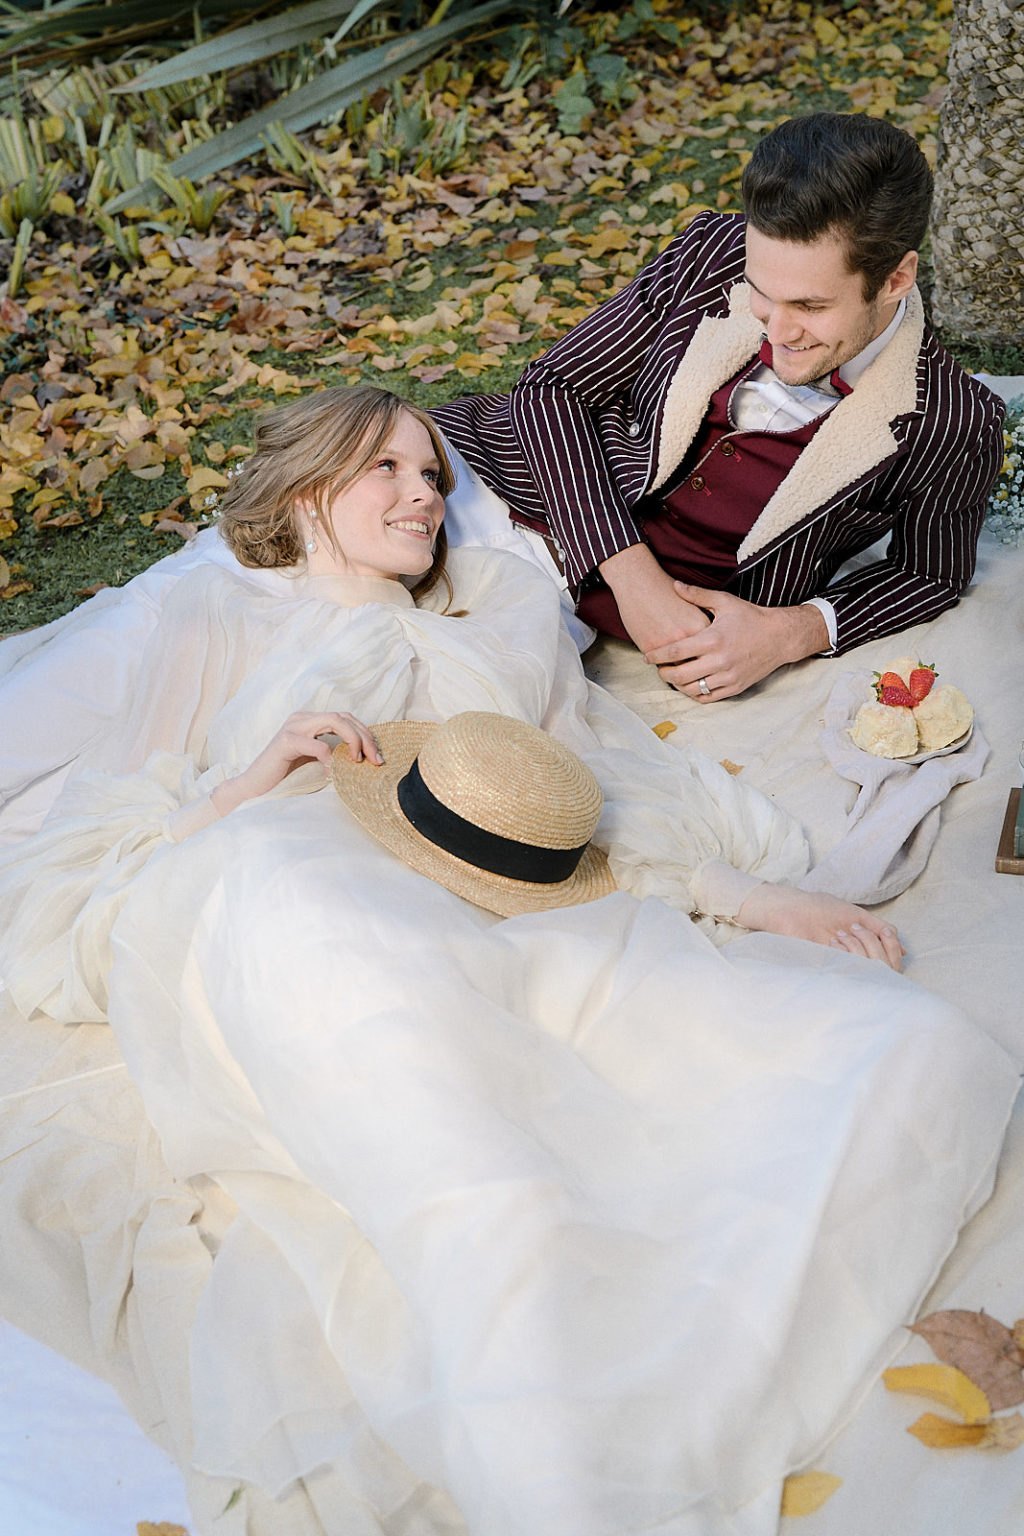 Luxury Picnic Wedding With Chic Victorian Inspiration